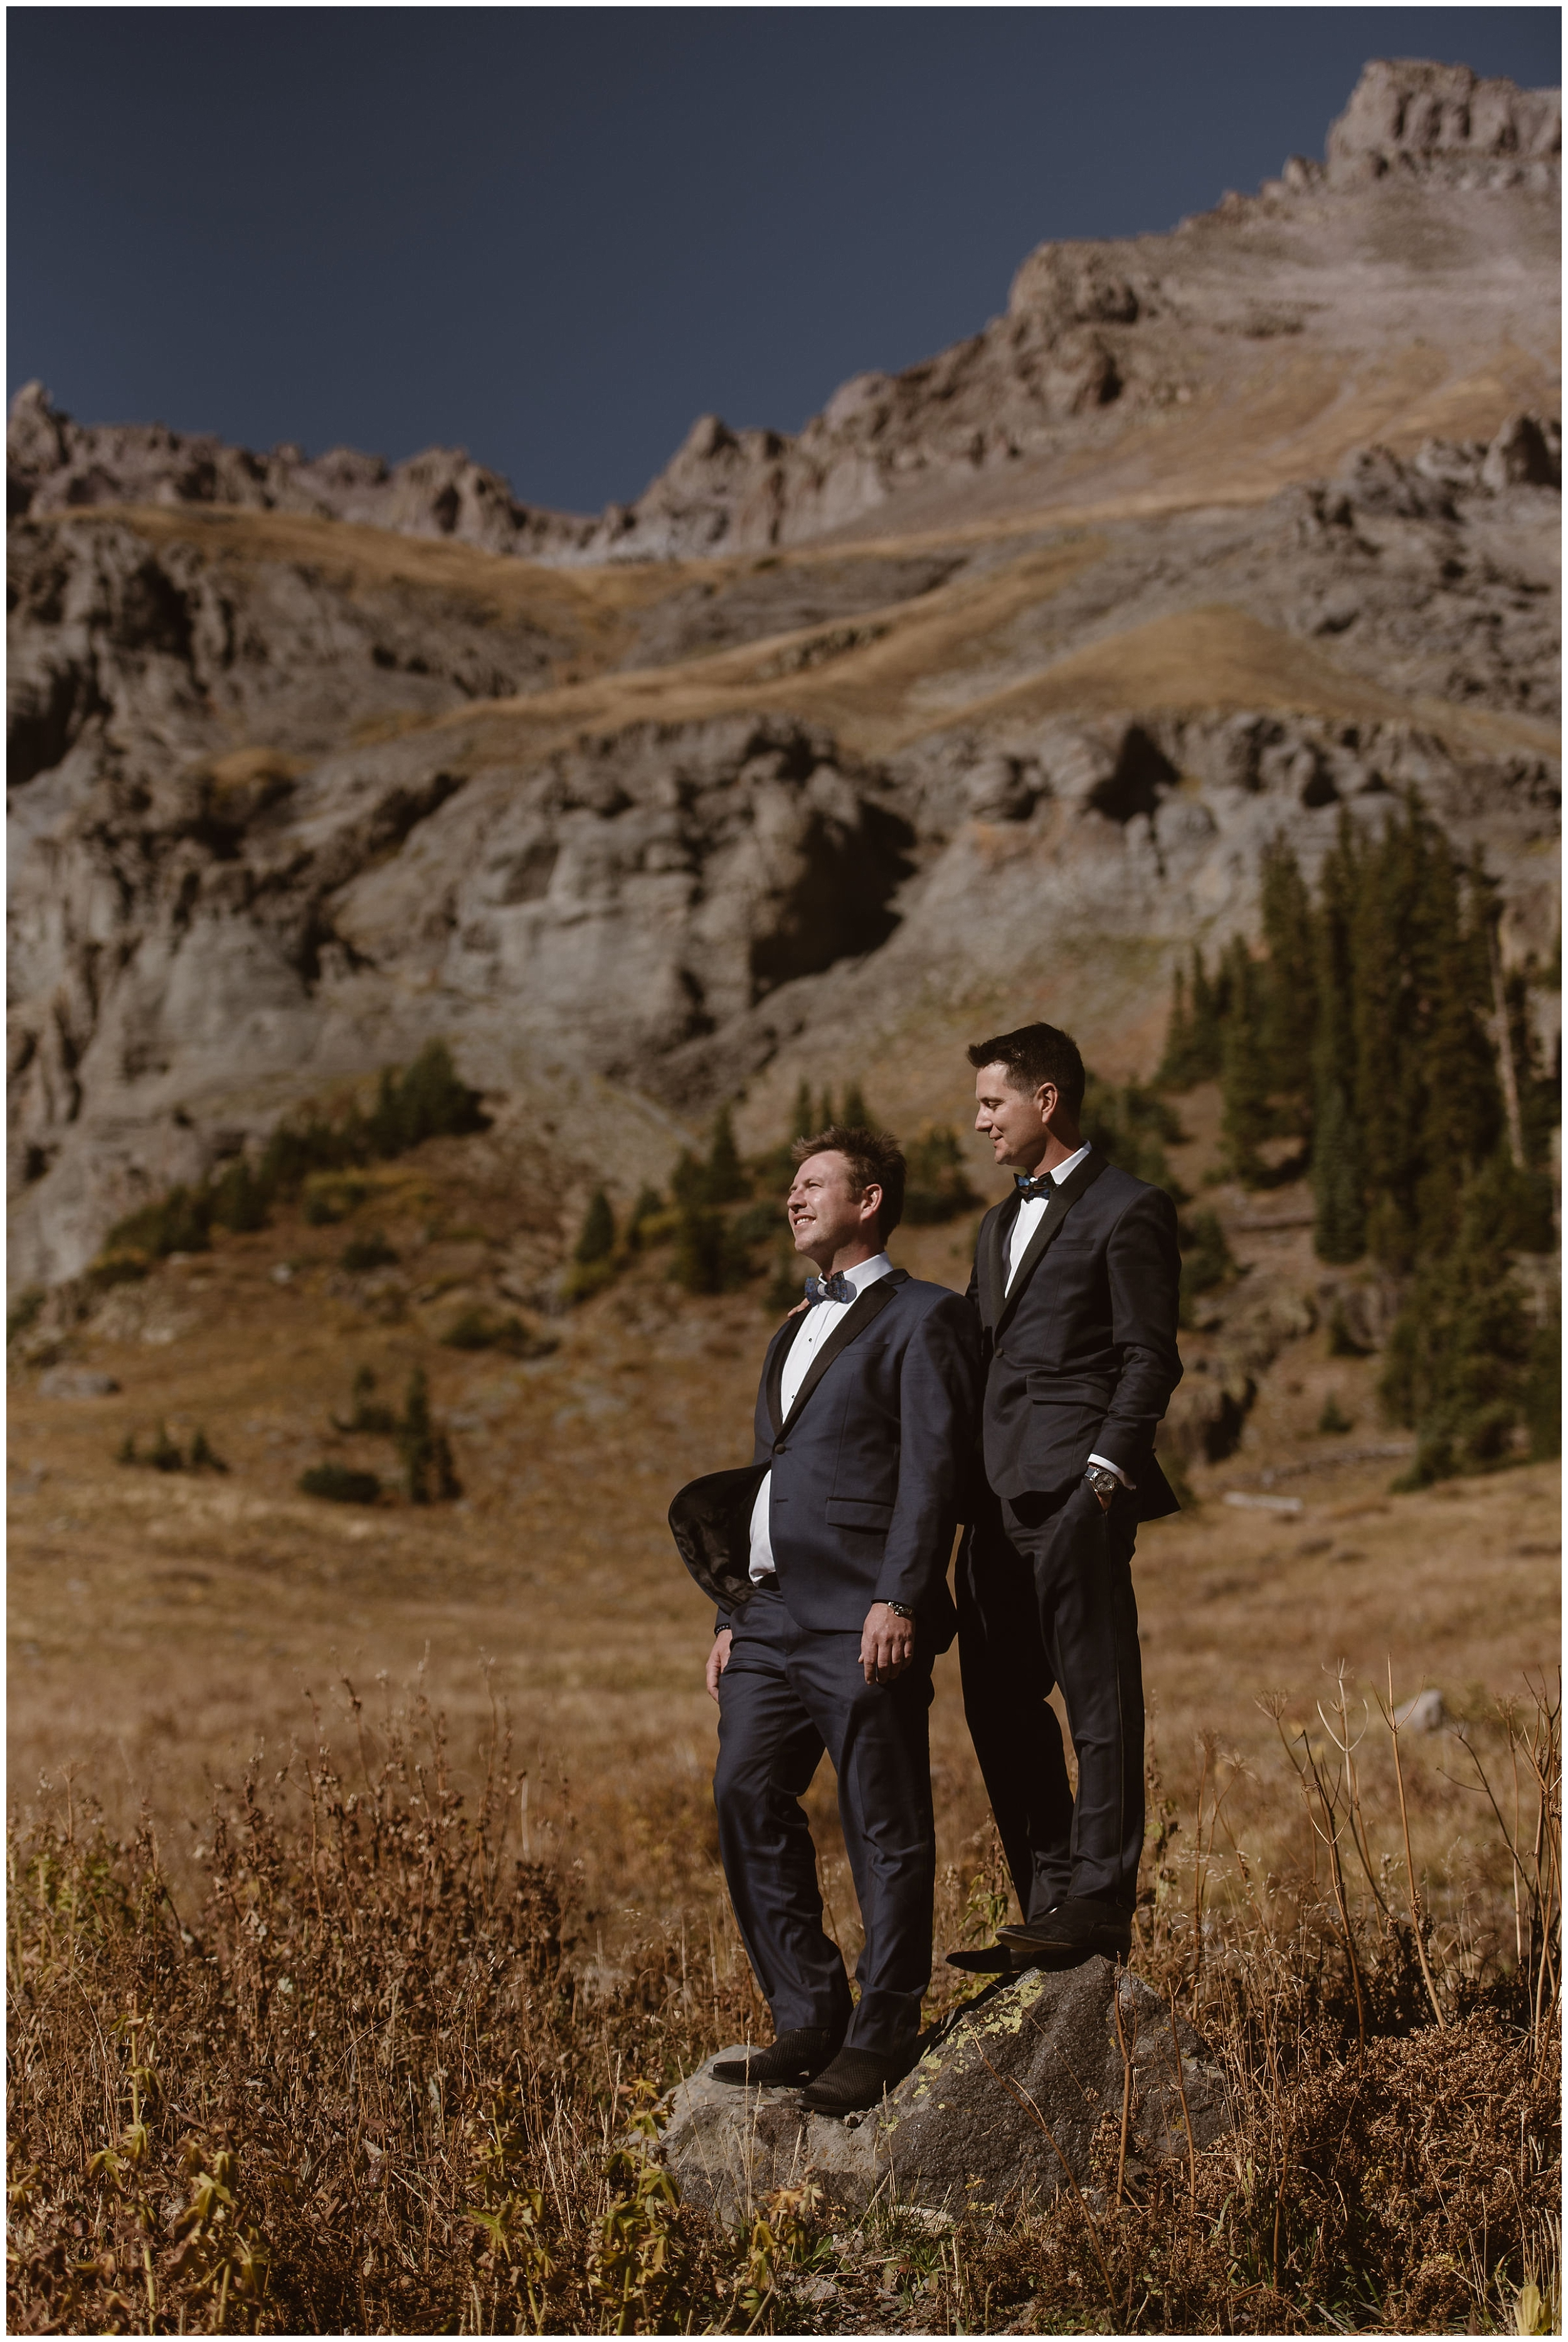 The two grooms, Brian and Ernie, stand up on a rock in the middle of a golden field. Behind them, an enormous, rocky mountain dotted in vibrant green and gold trees can be seen. These elopement photos were captured by Colorado elopement photographer Adventure Instead.